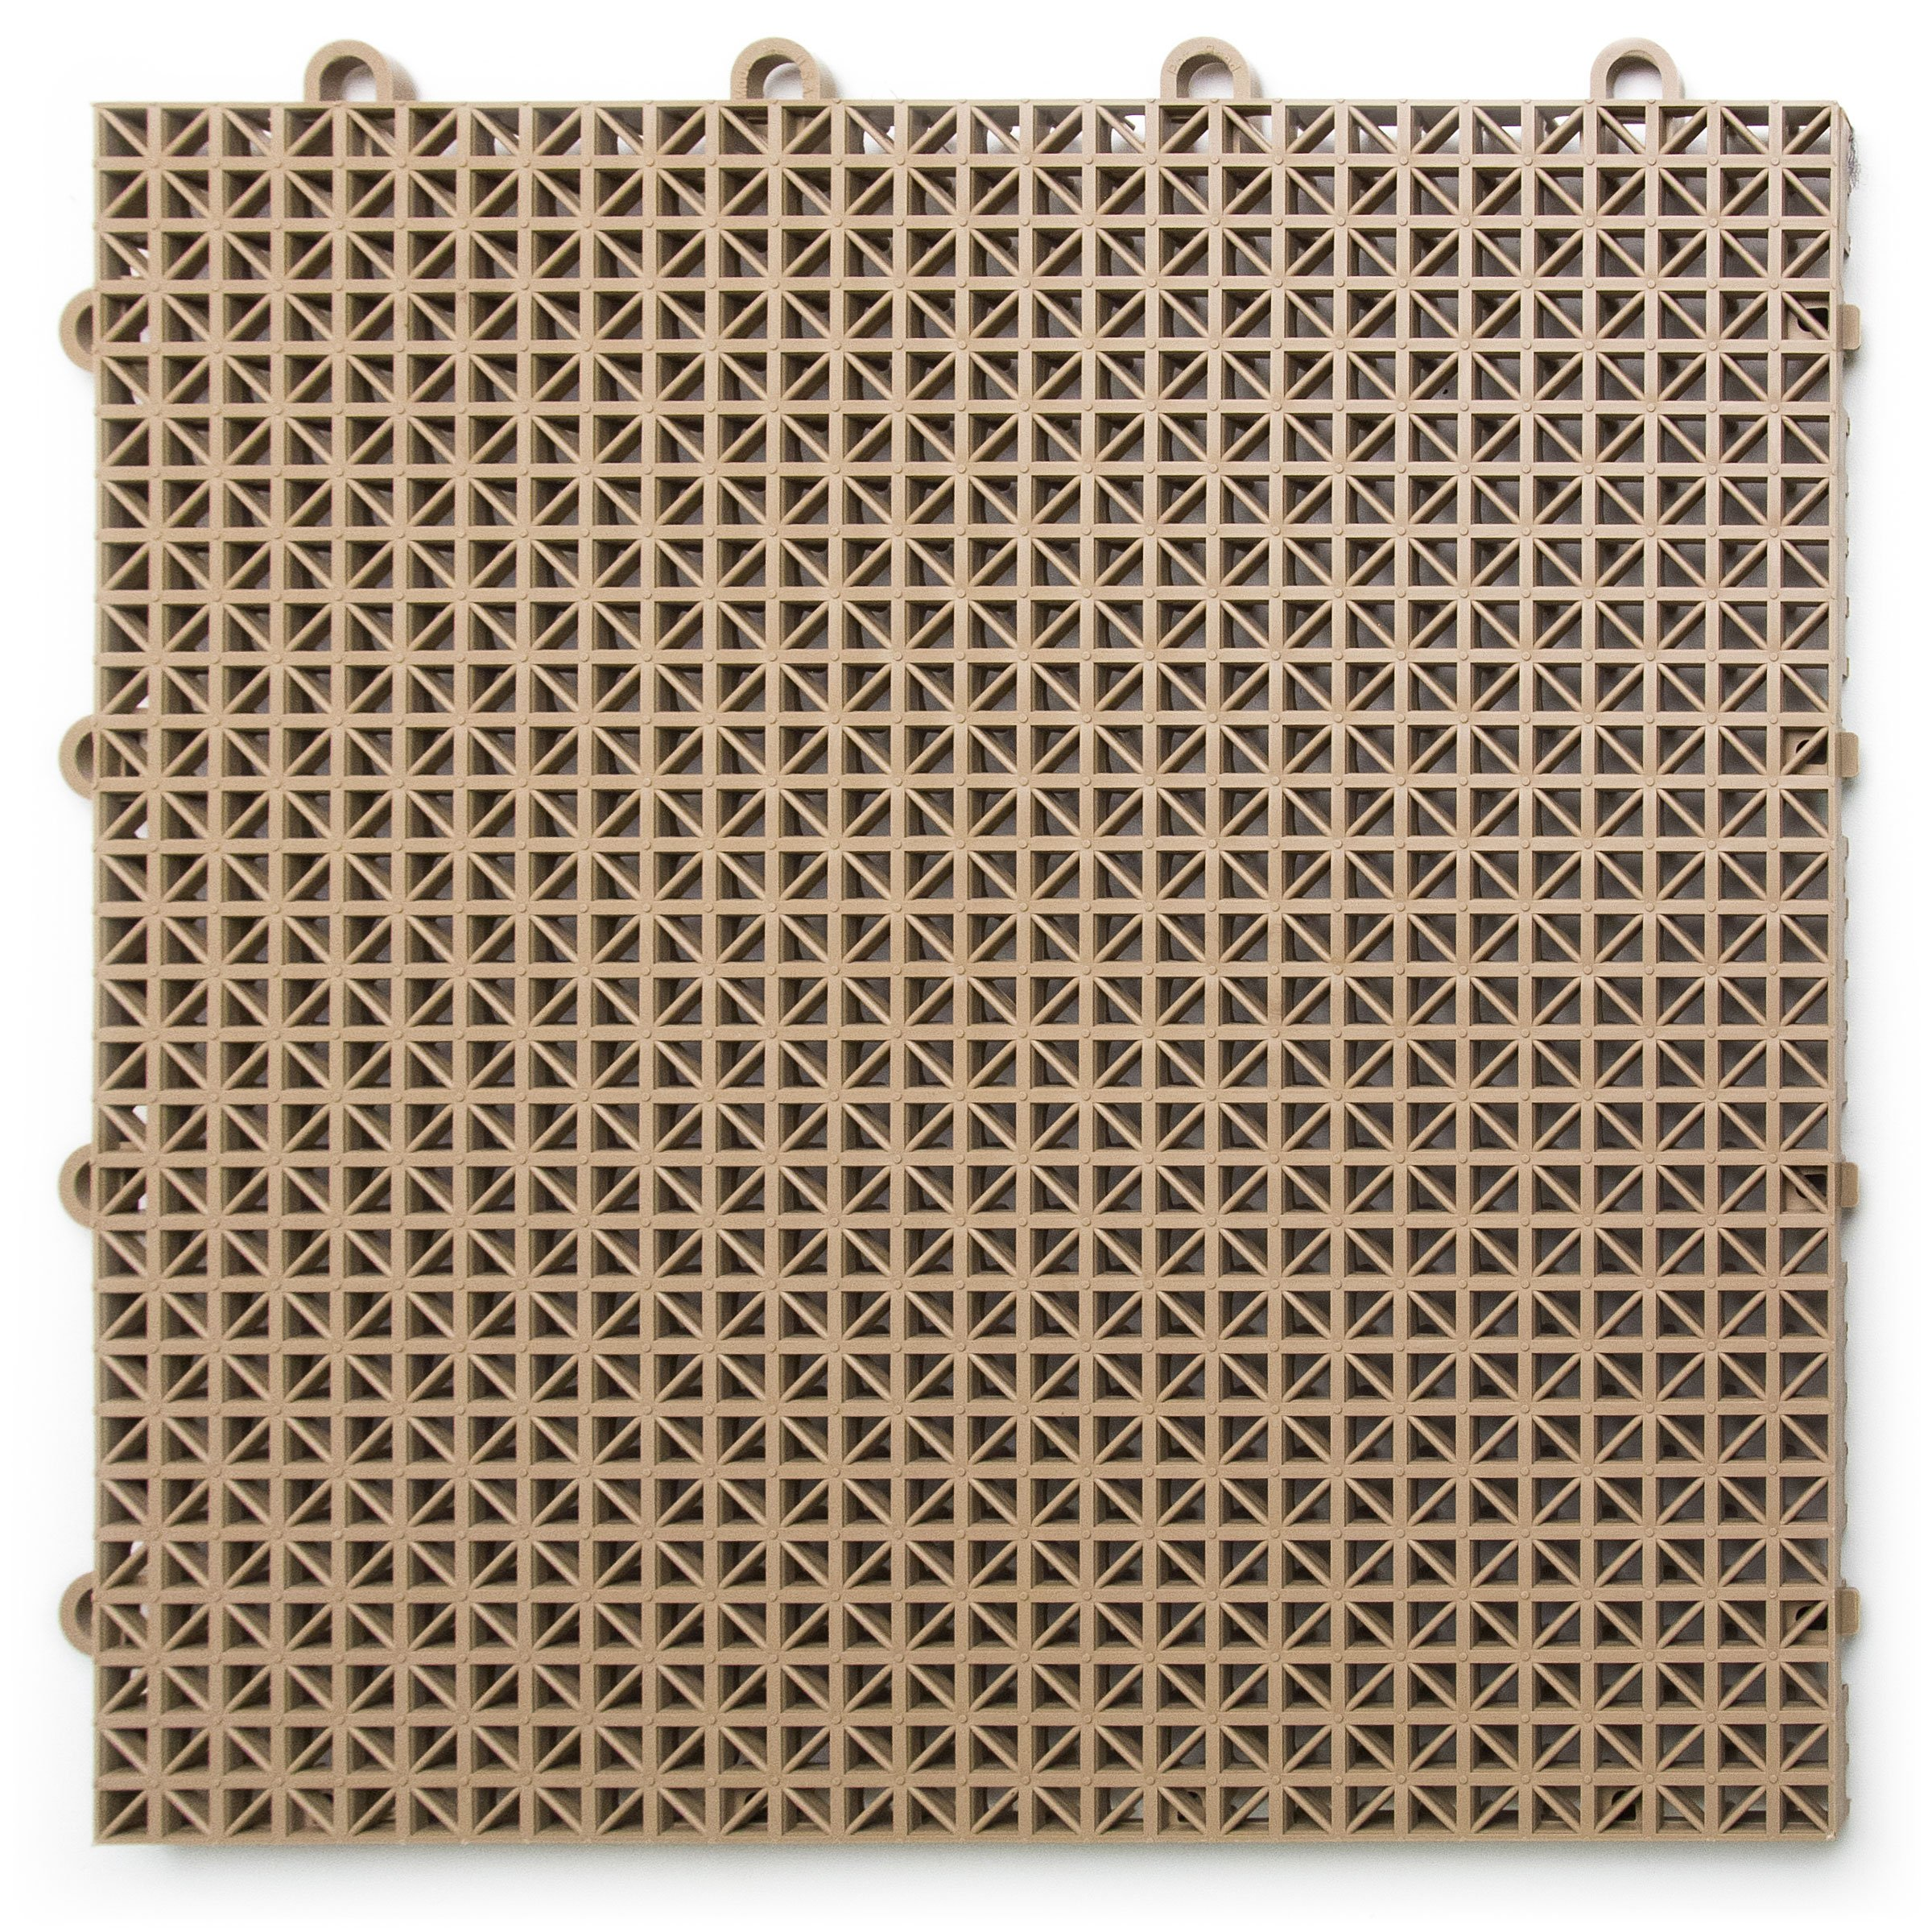 DuraGrid 12'' x 12'' Interlocking Deck and Patio Tiles, Pack of 30, Beige by DuraGrid®